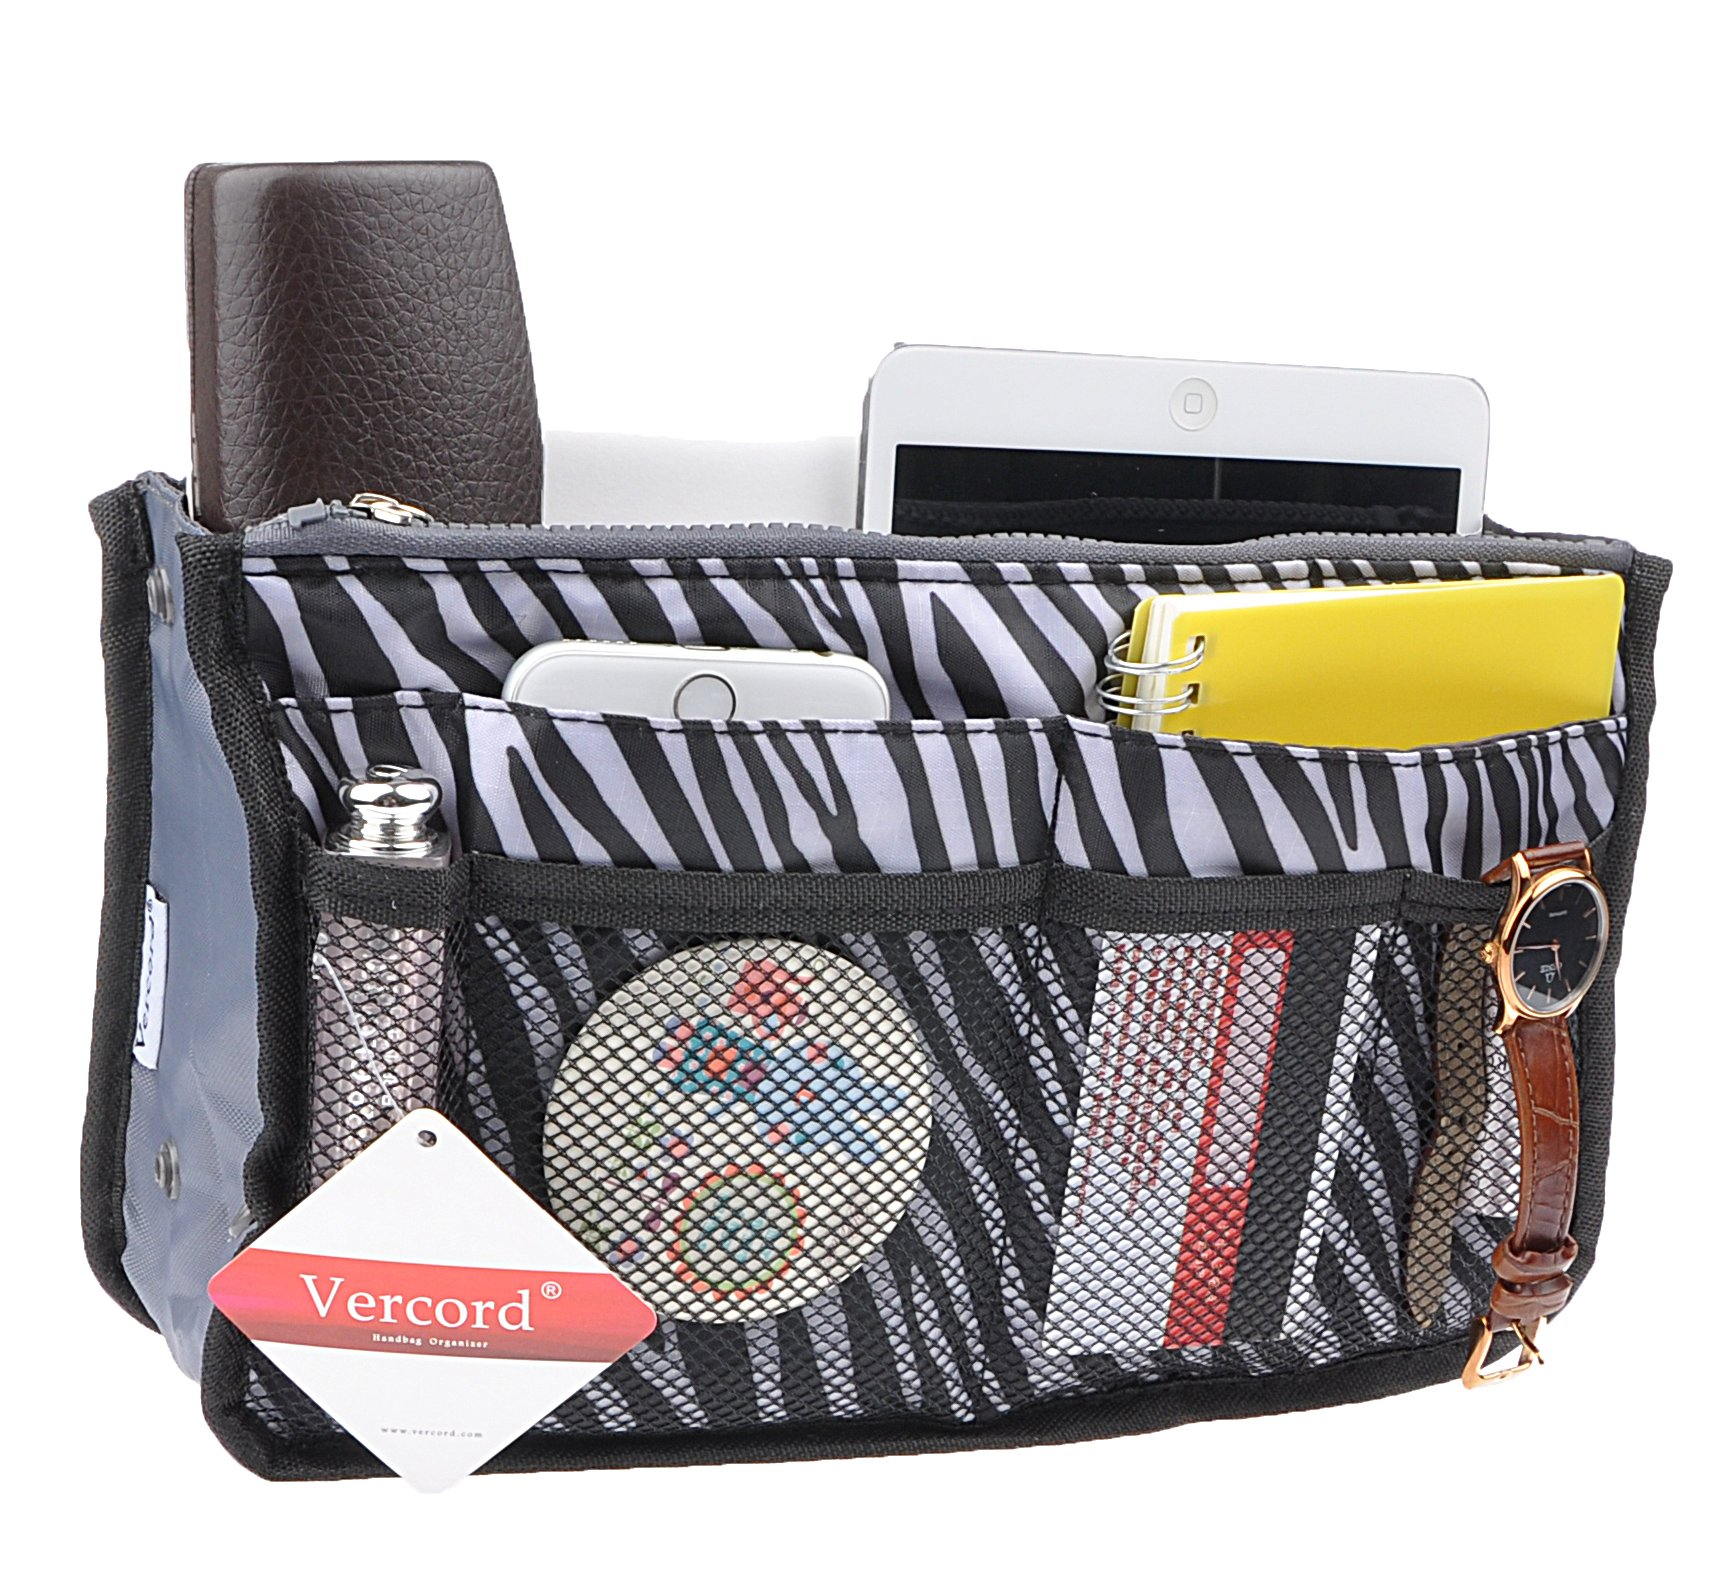 Purse Organizer,Insert Handbag Organizer Bag in Bag (13 Pockets 15 Colors 3 Size) (M, zebra stripes)